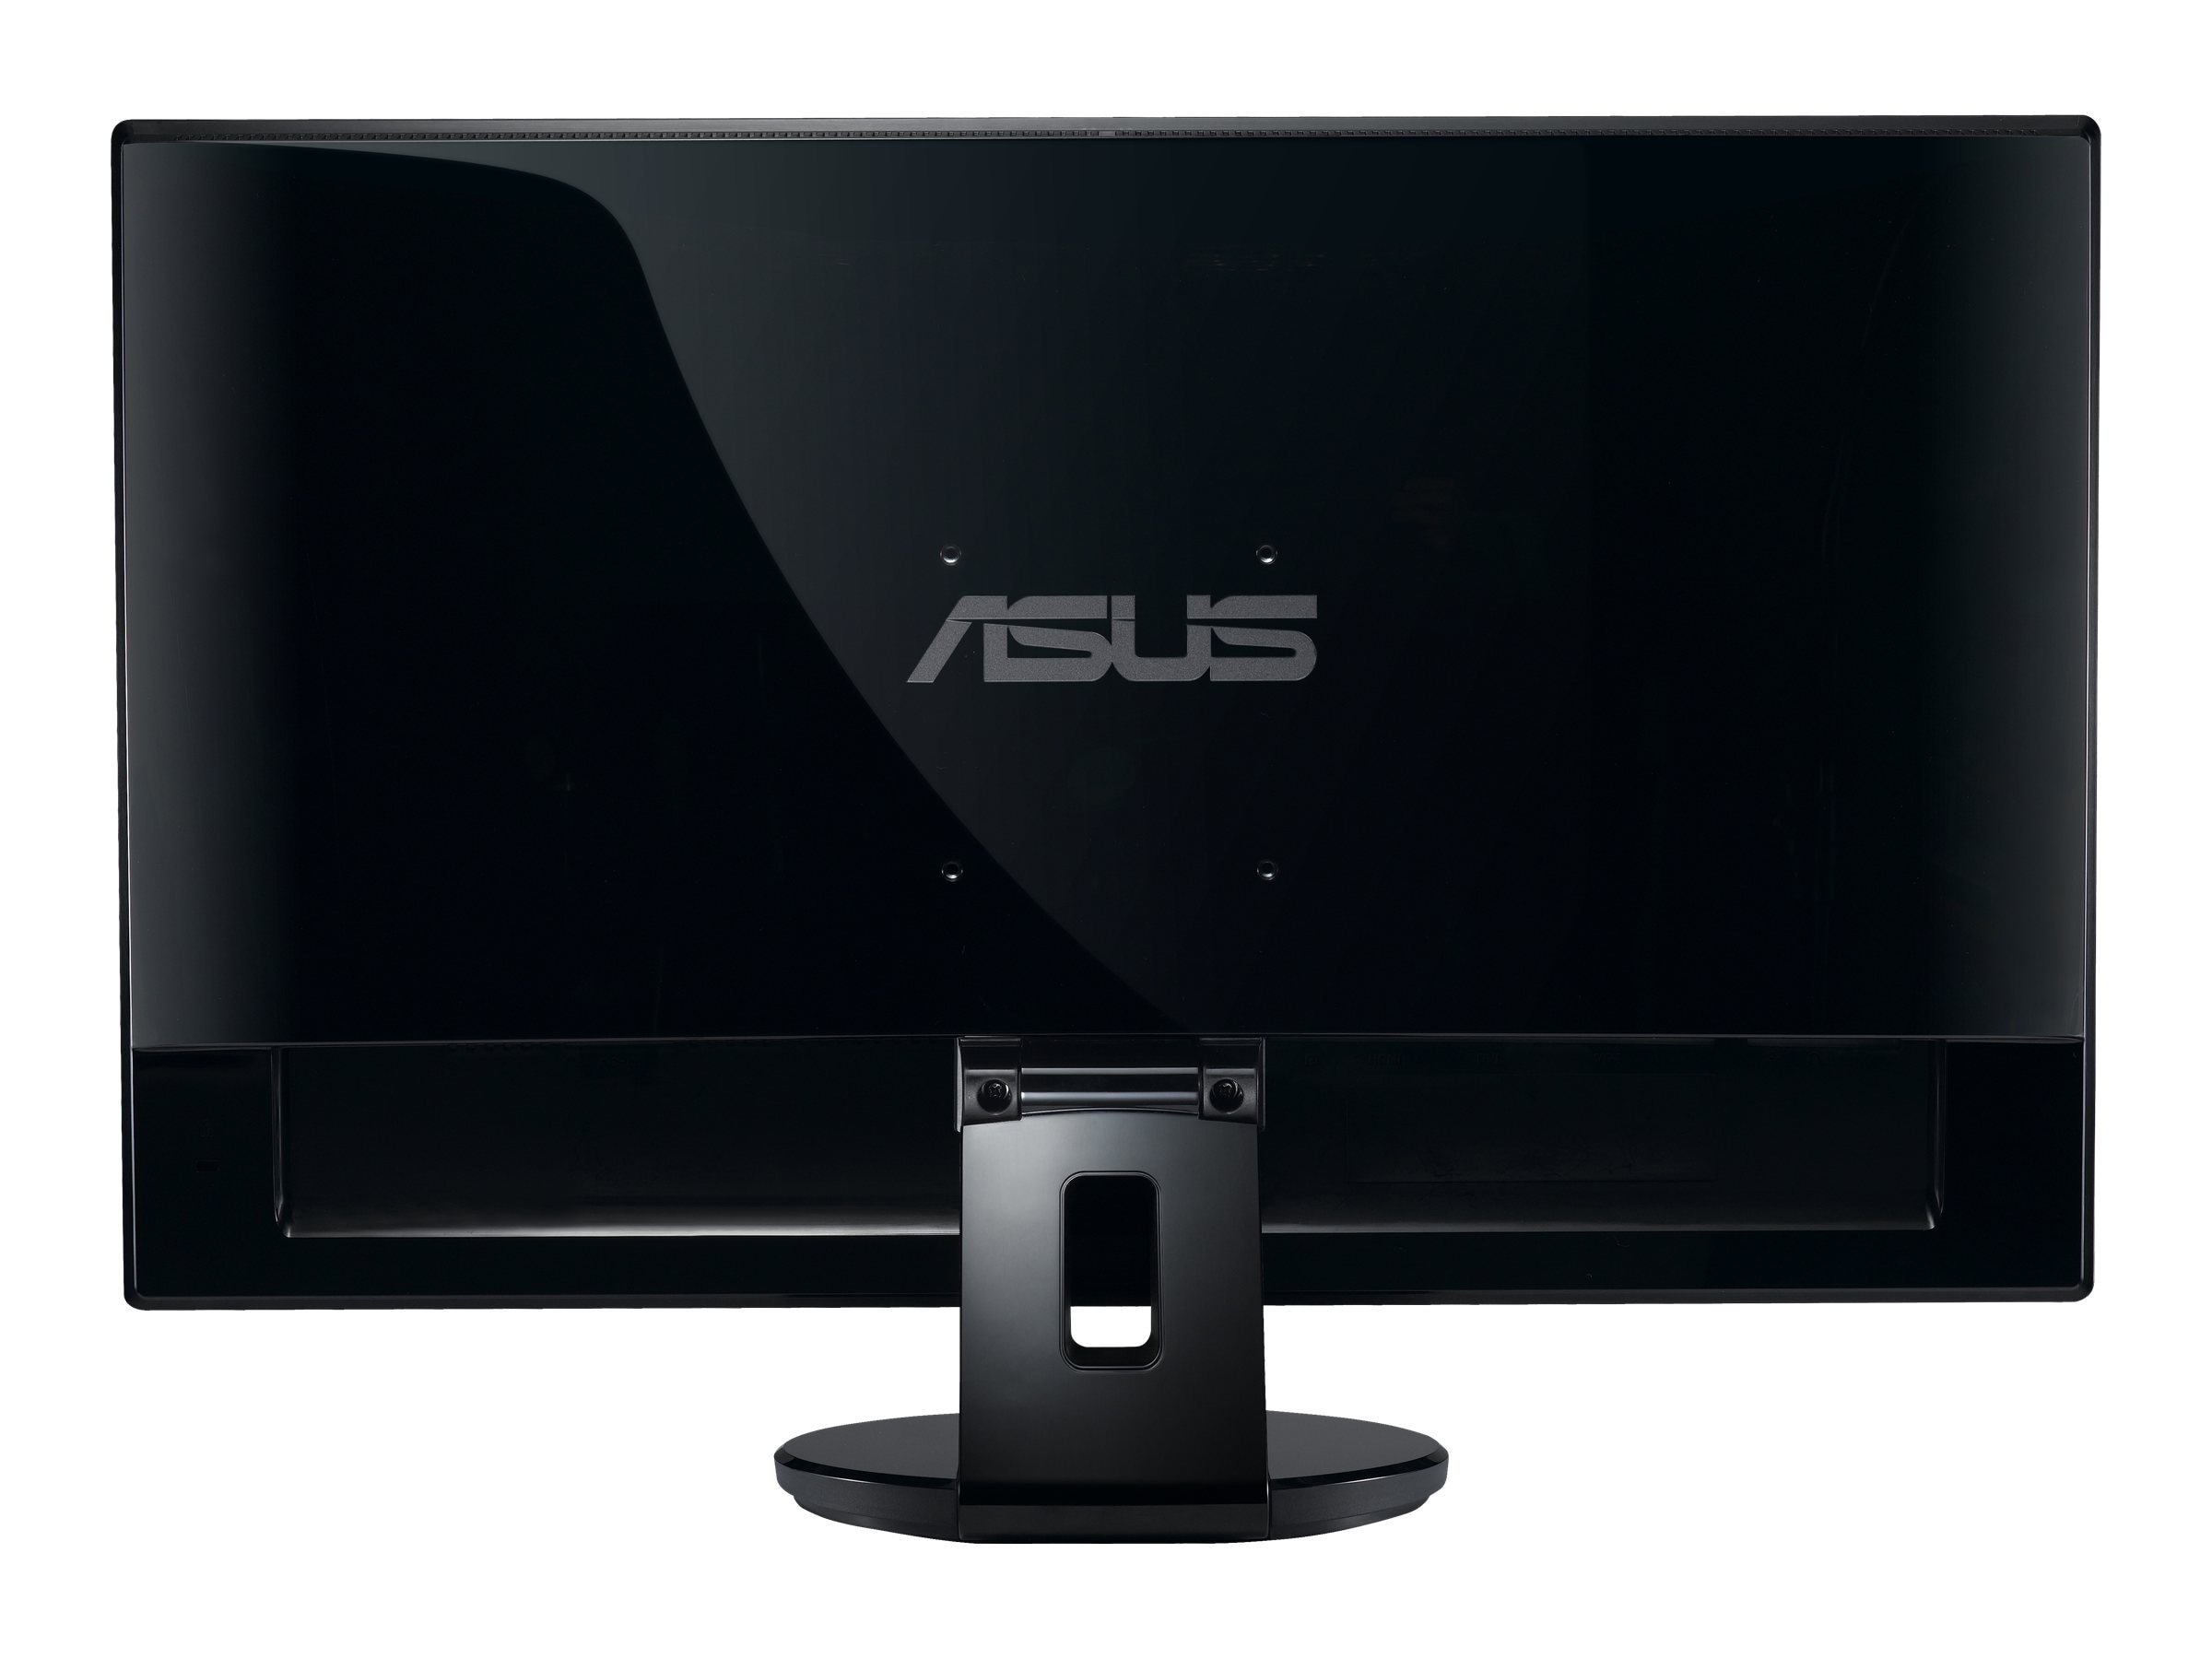 Asus 27 VE278Q Full HD LED-LCD Monitor with Speakers, Black, VE278Q